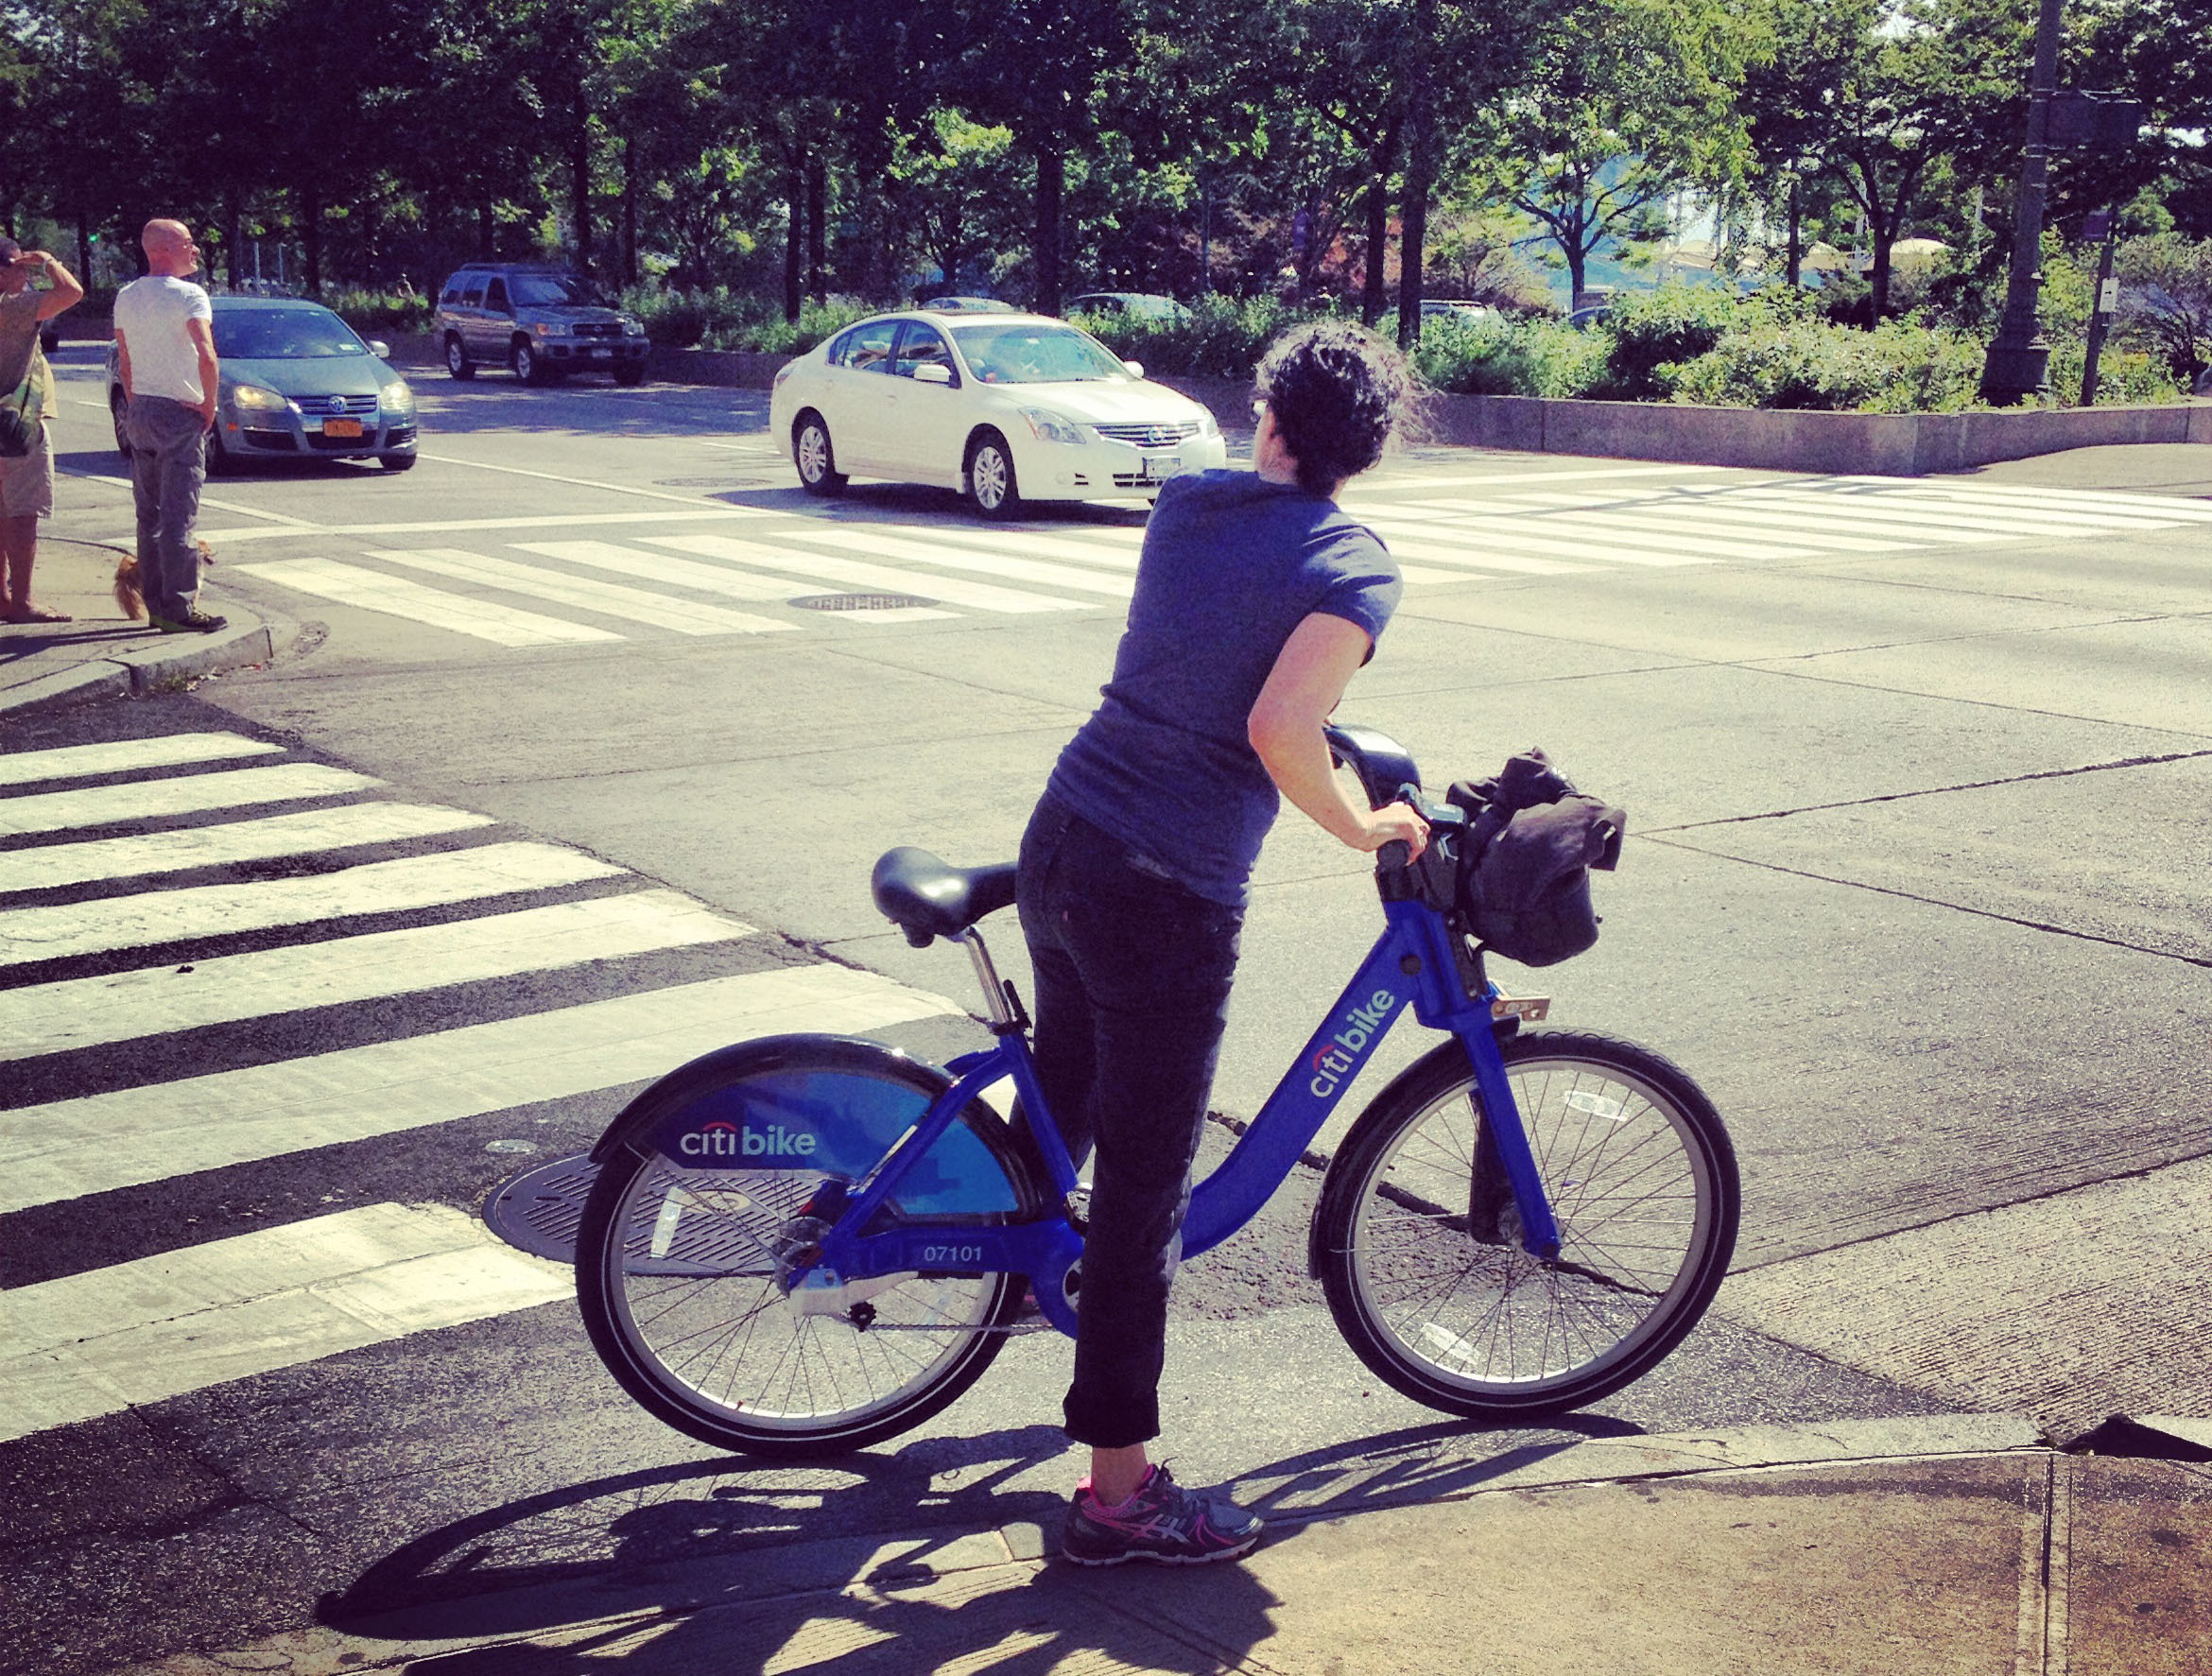 citi bike, bike share, new york city, citibike